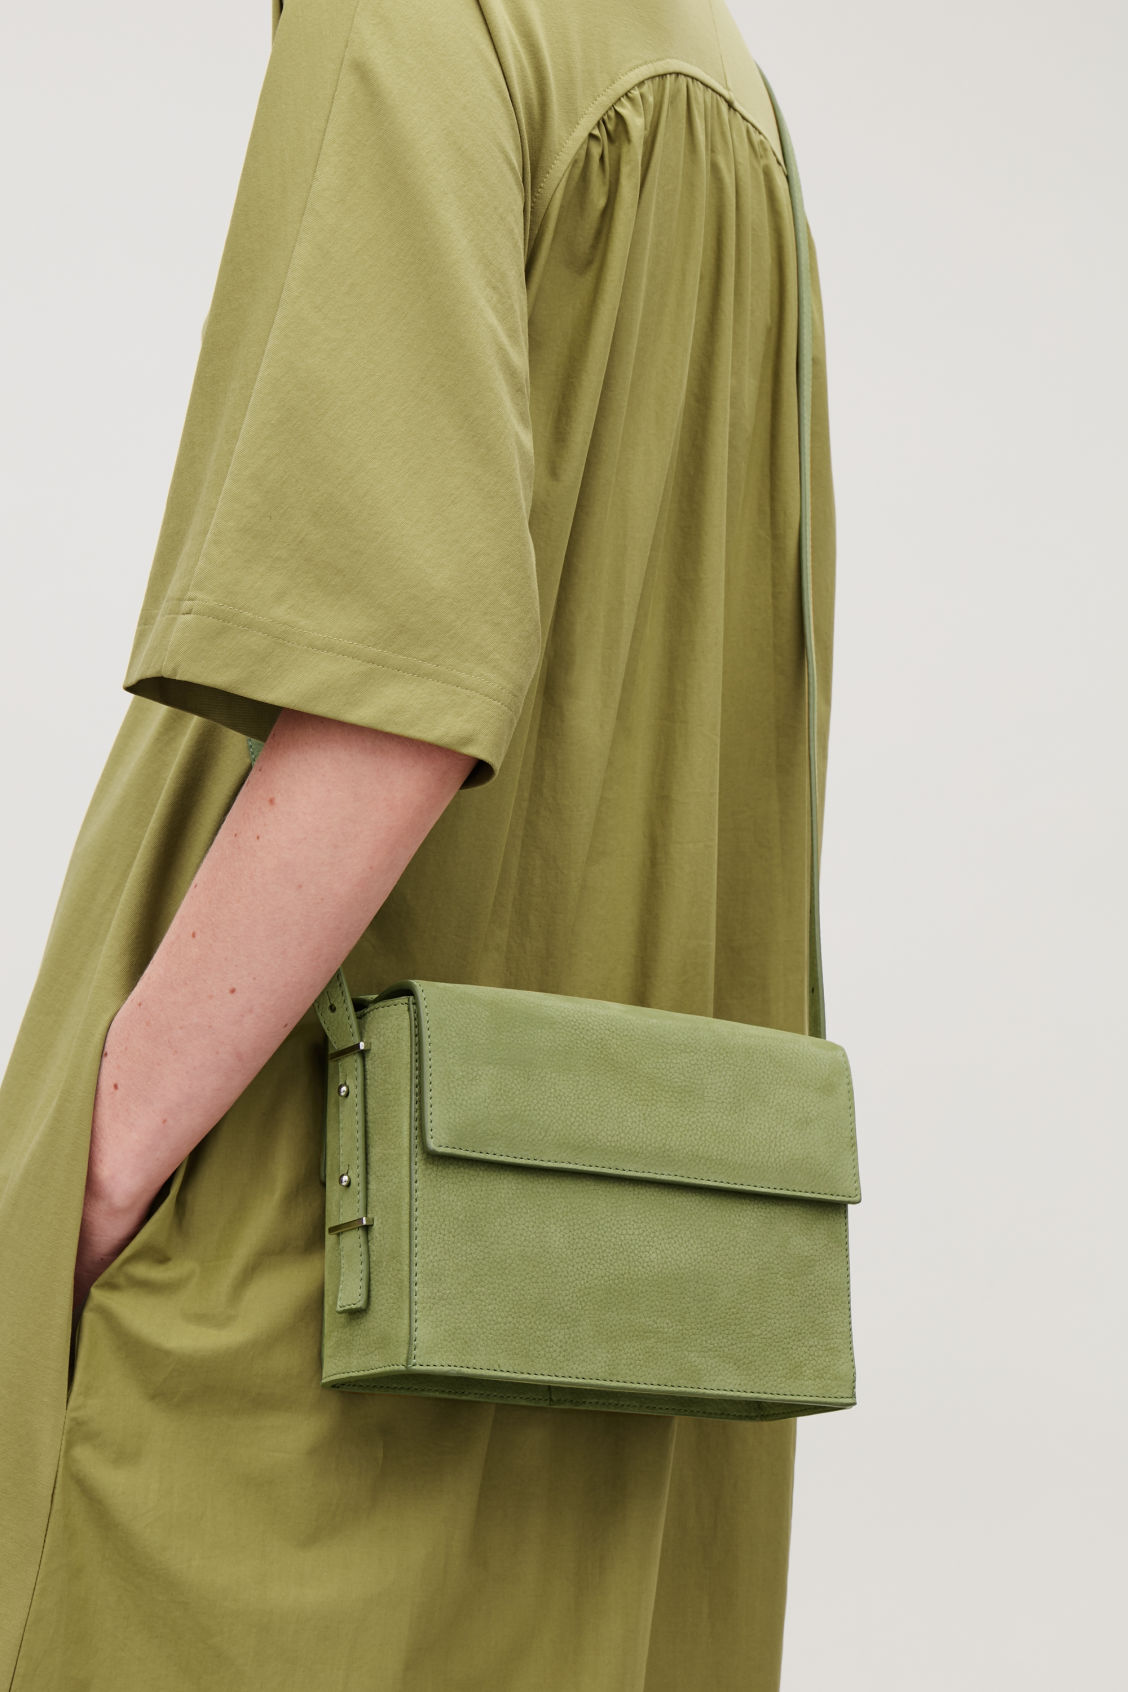 Detailed image of Cos double-flap box leather bag in green